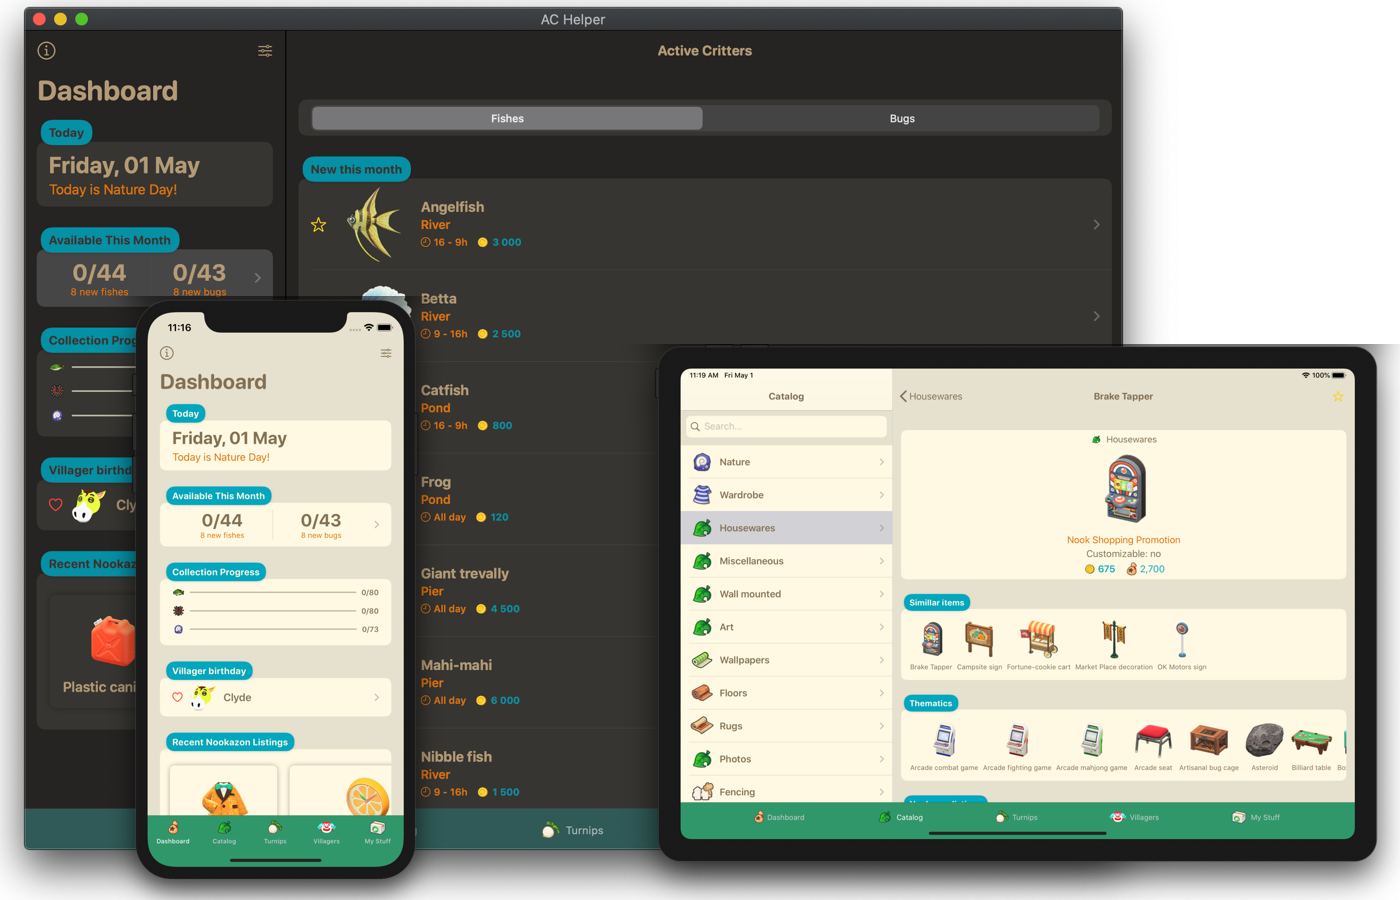 Promo image consisting of screenshot of iPhone, iPad and Mac version of the app